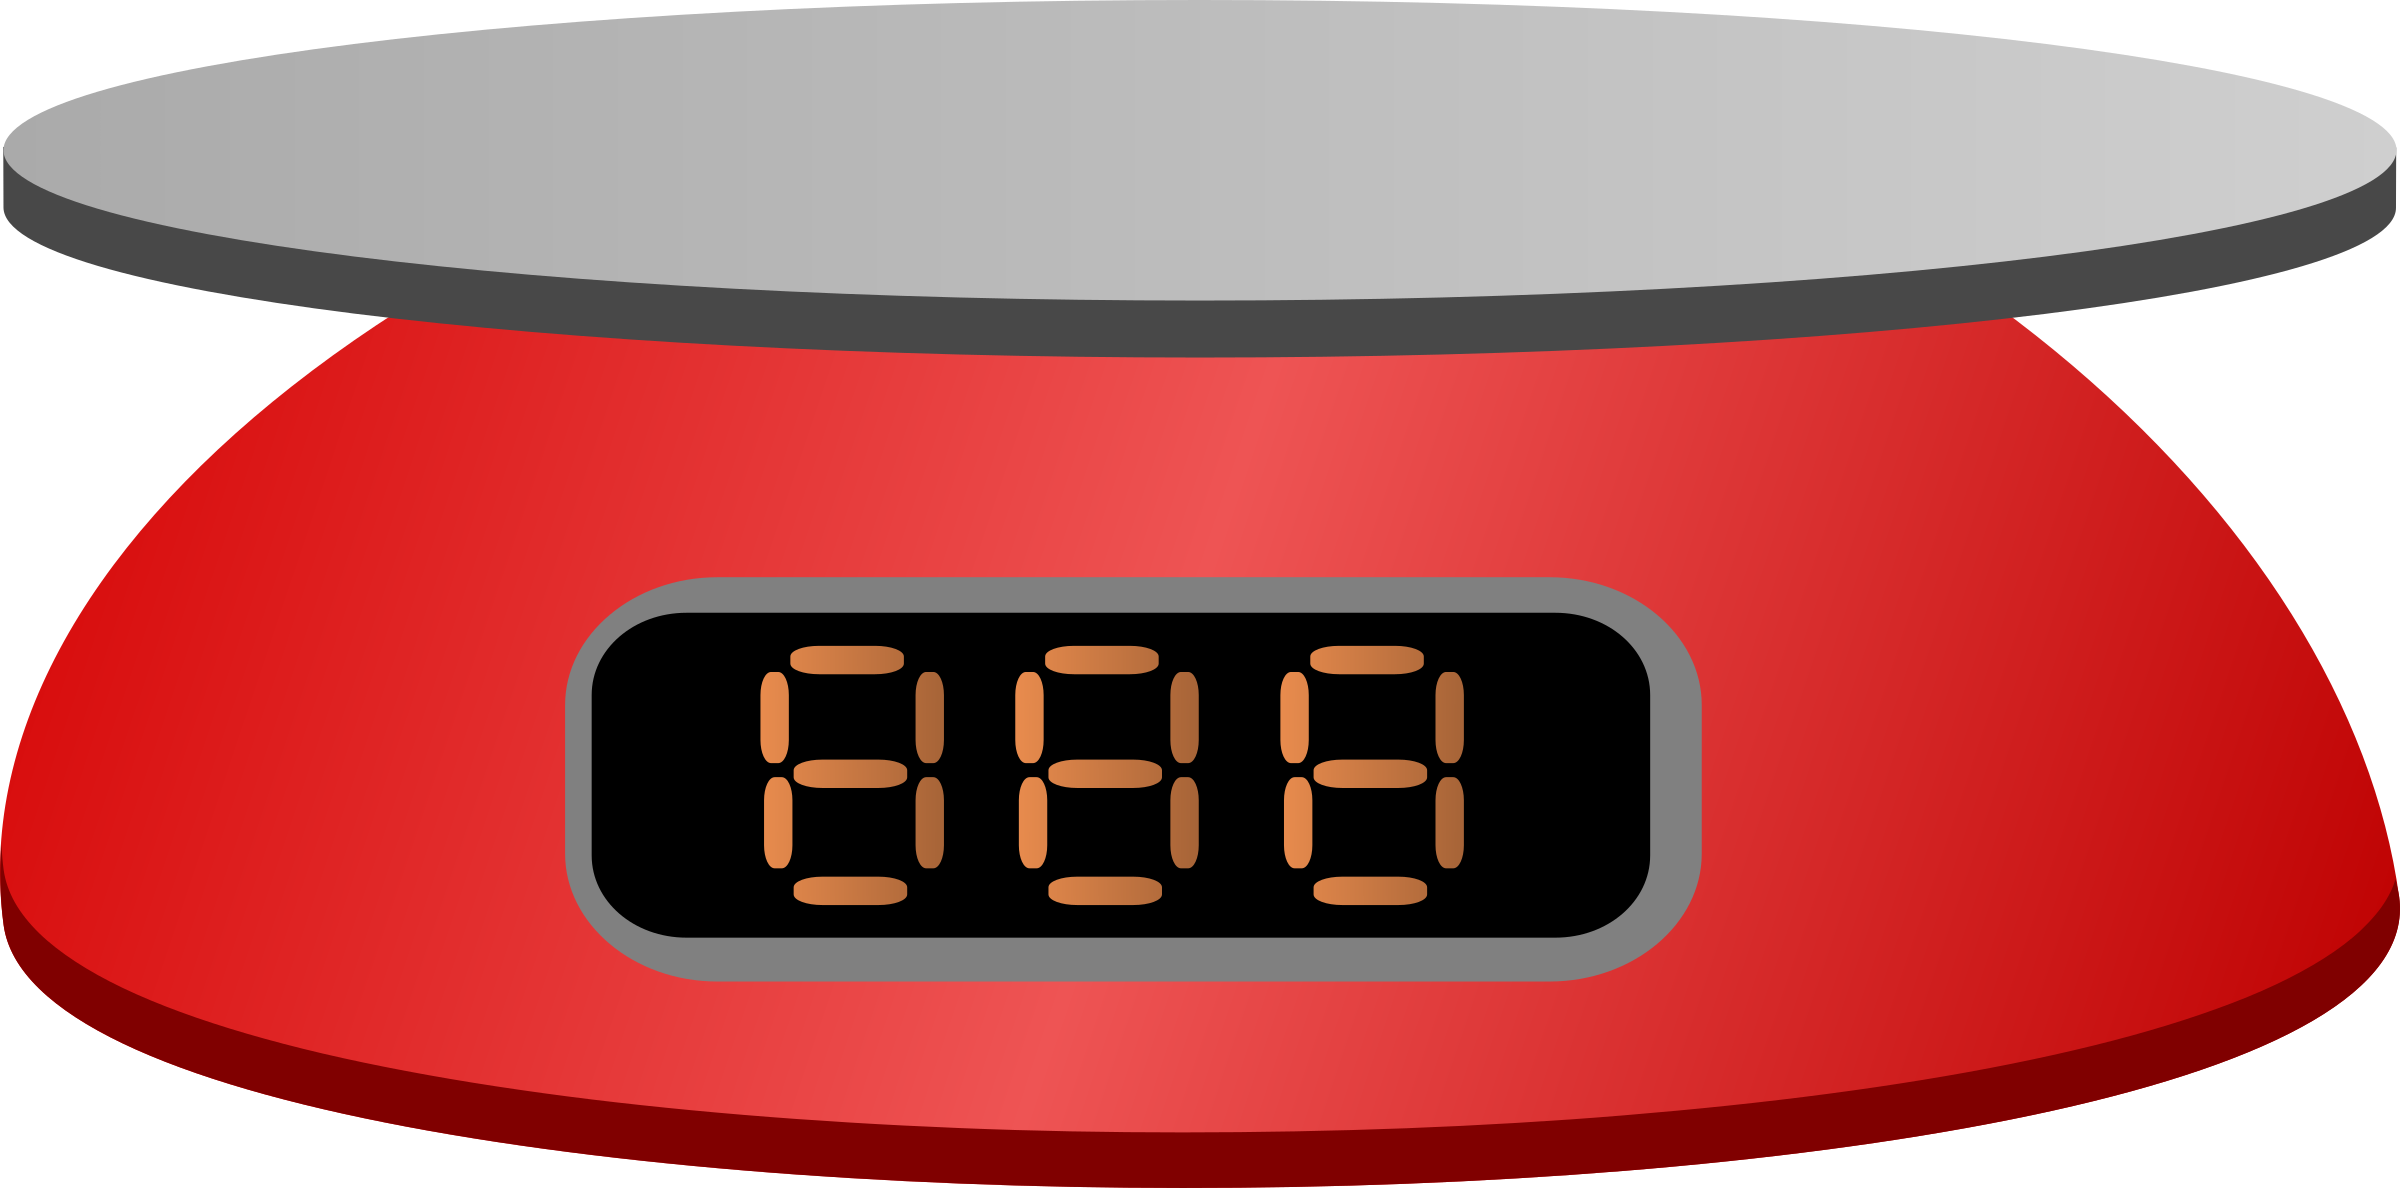 Weighing Scale Clipart Png.